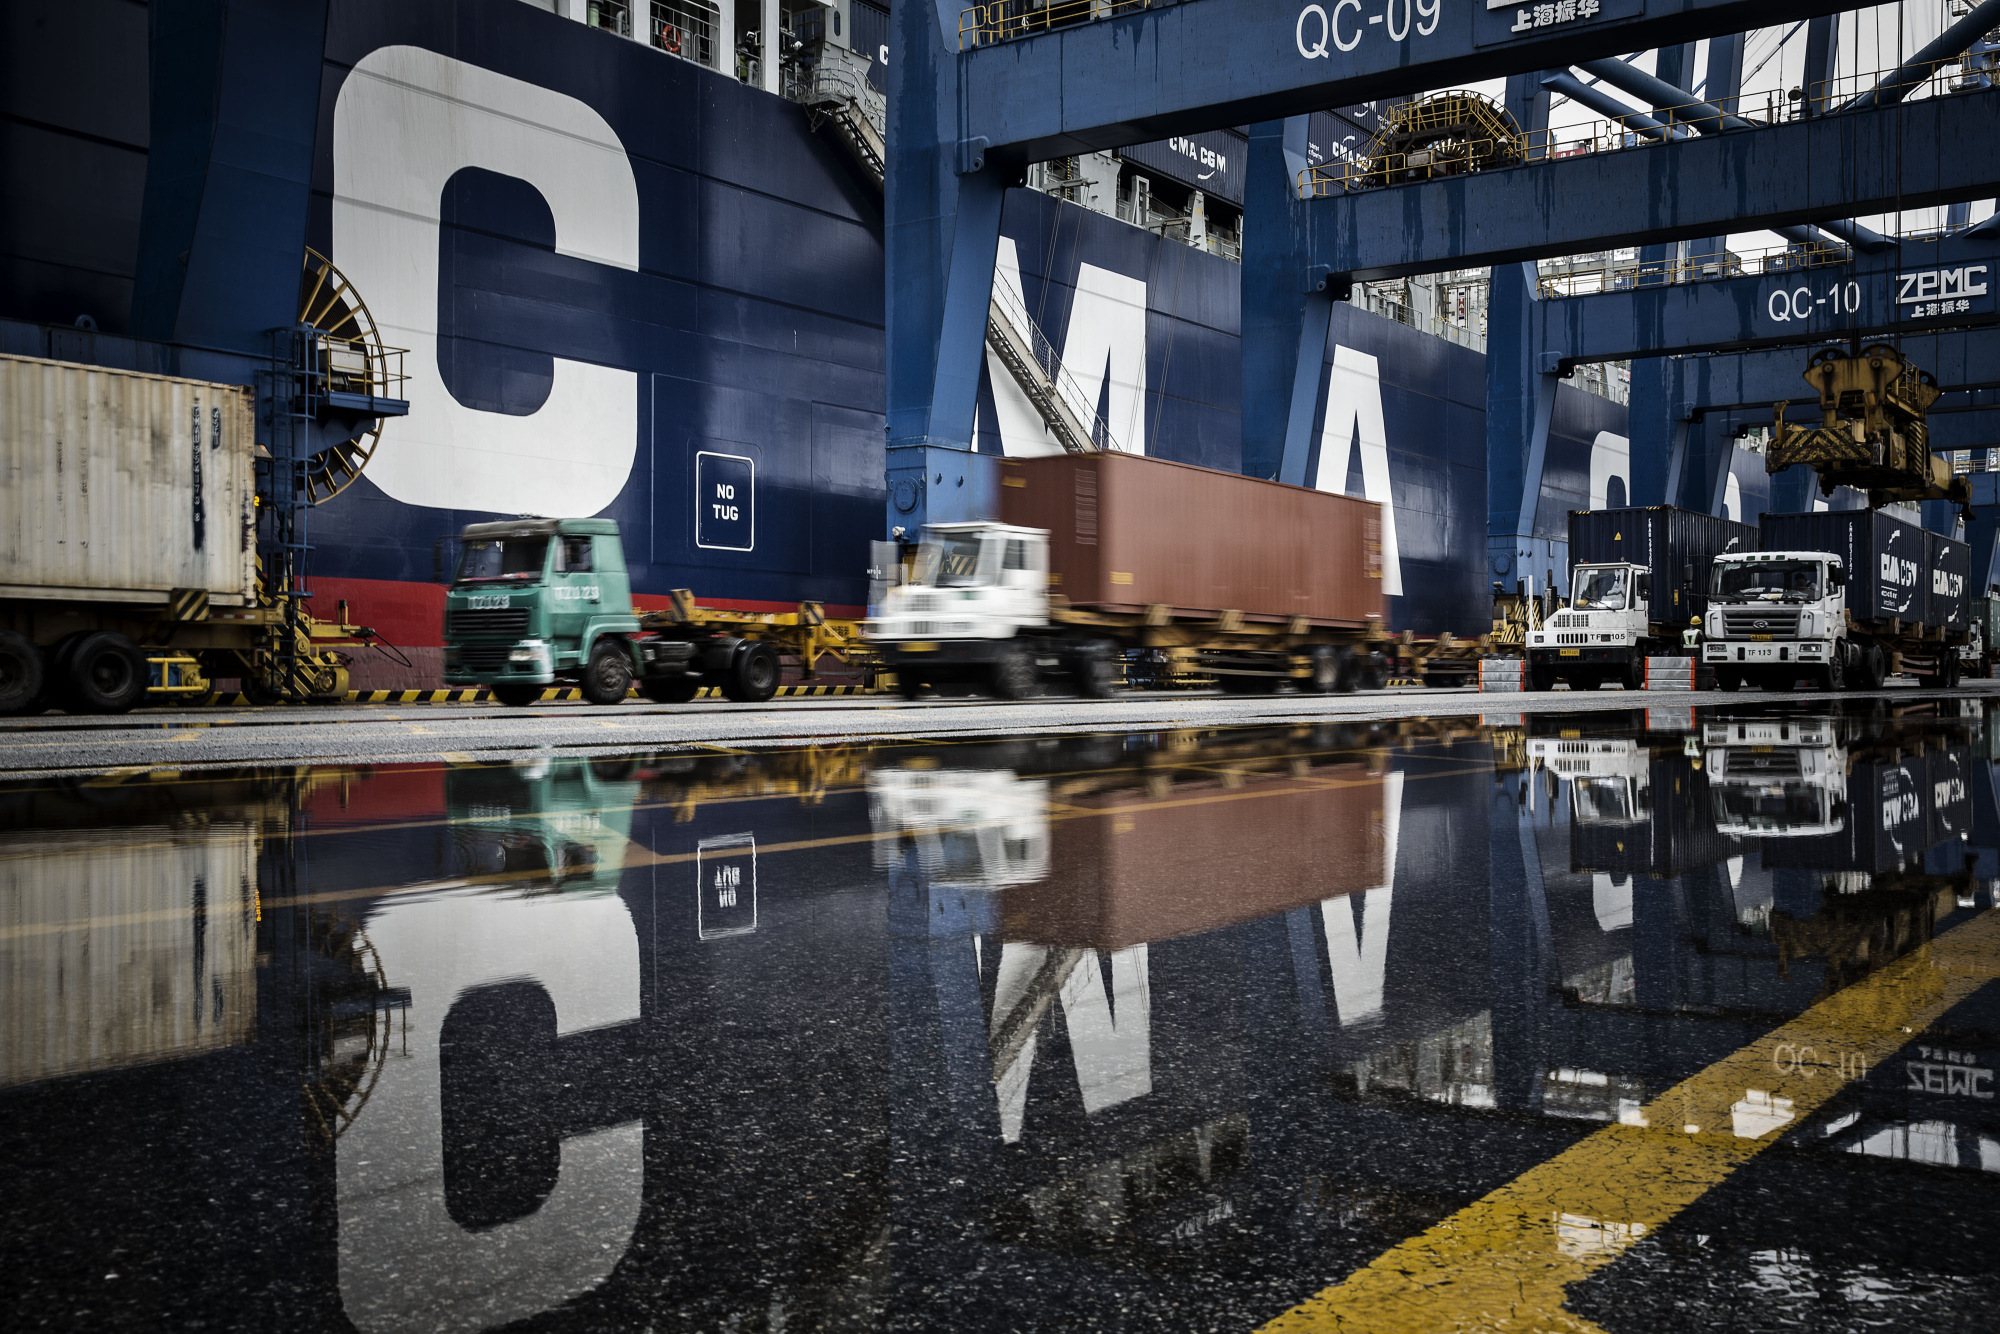 Trucks are reflected in a puddle as they wait in line to unload their containers onto CMA CGM SA's Benjamin Franklin container ship docked at the Guangzhou Nansha Container Port in Guangzhou, China.